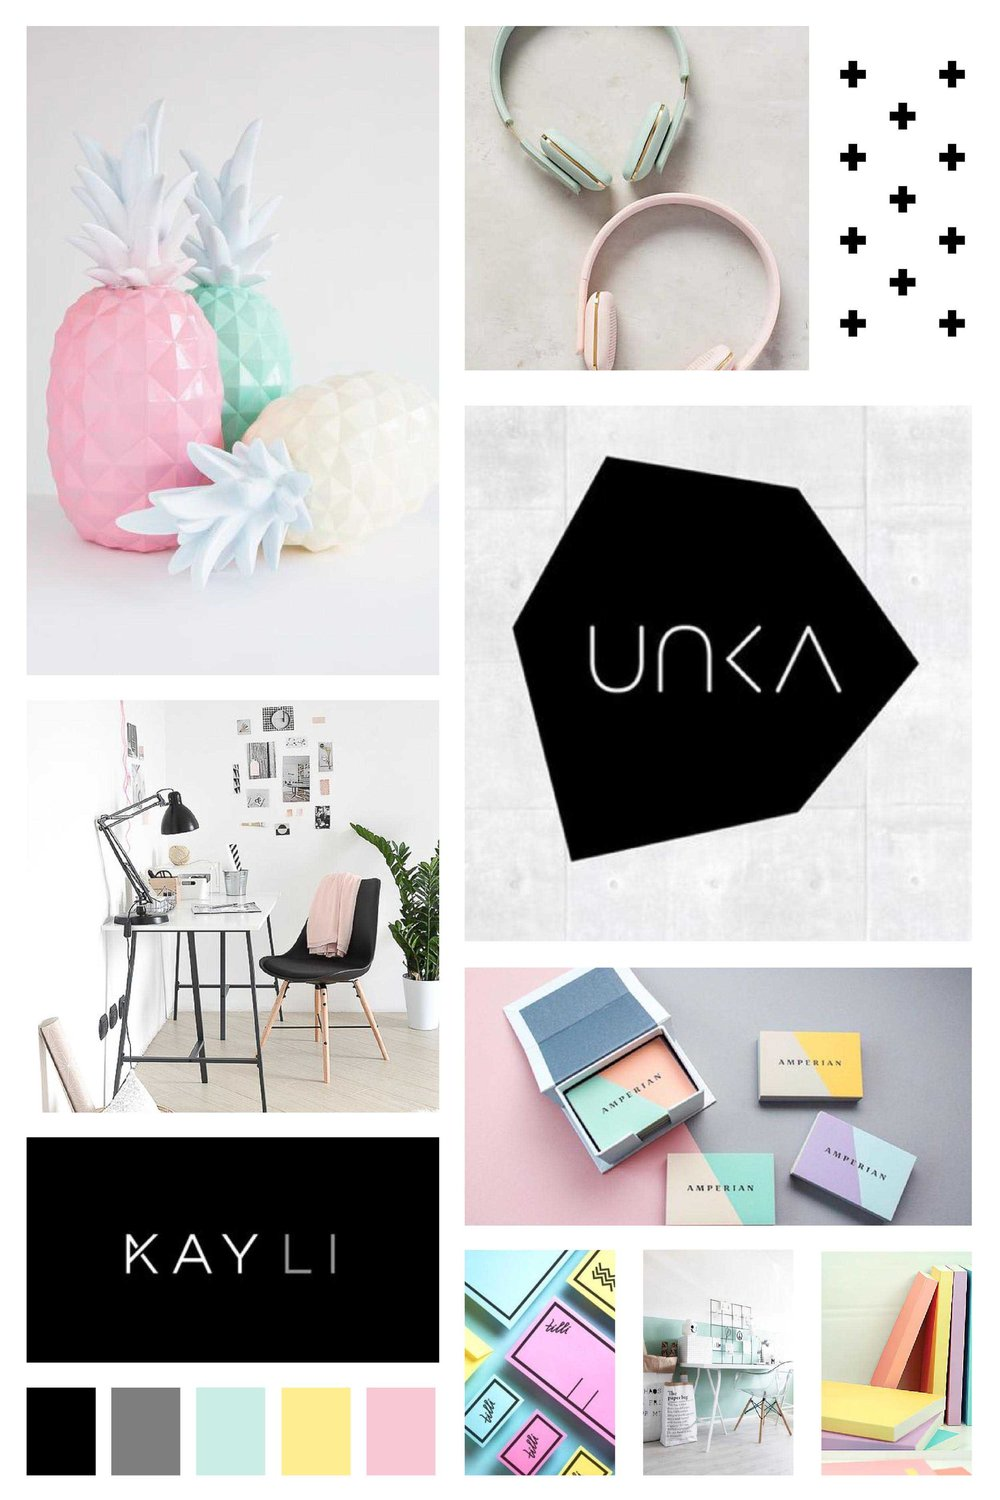 Sleek, modern, minimalist, pastel mood board for logo and brand inspiration.